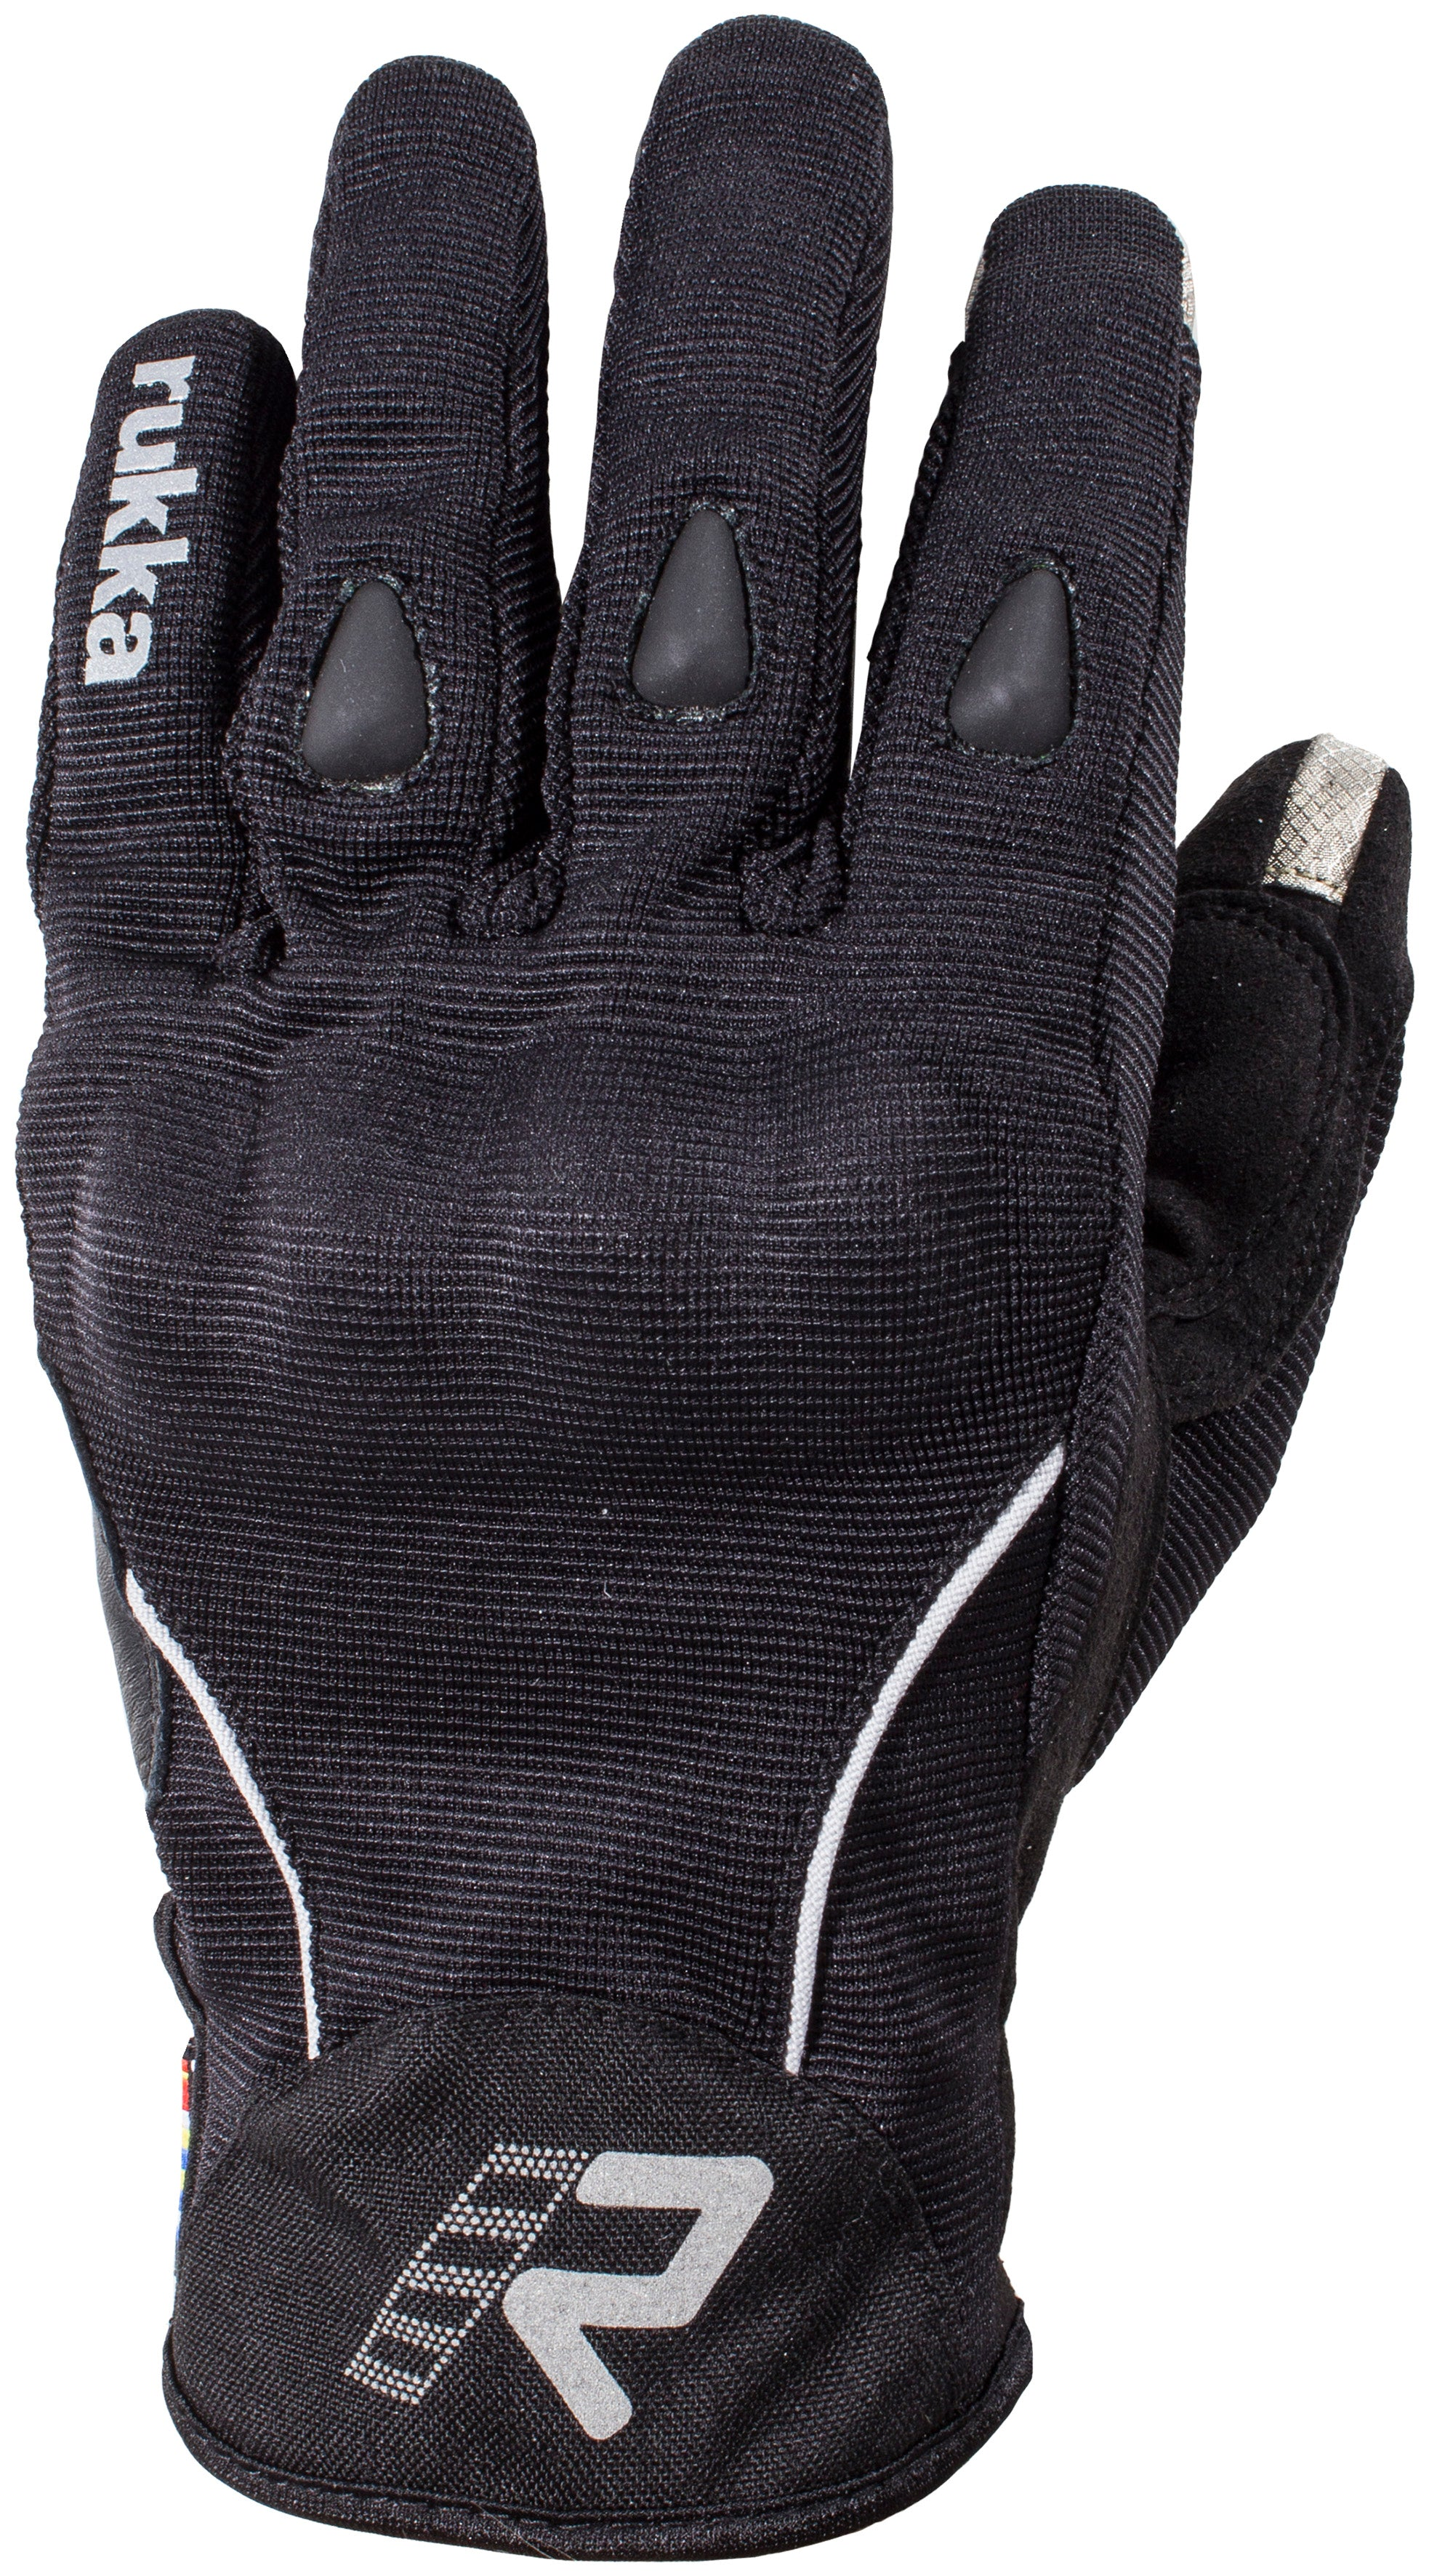 Rukka Forsair Gloves, Gloves, Rukka - Averys Motorcycles